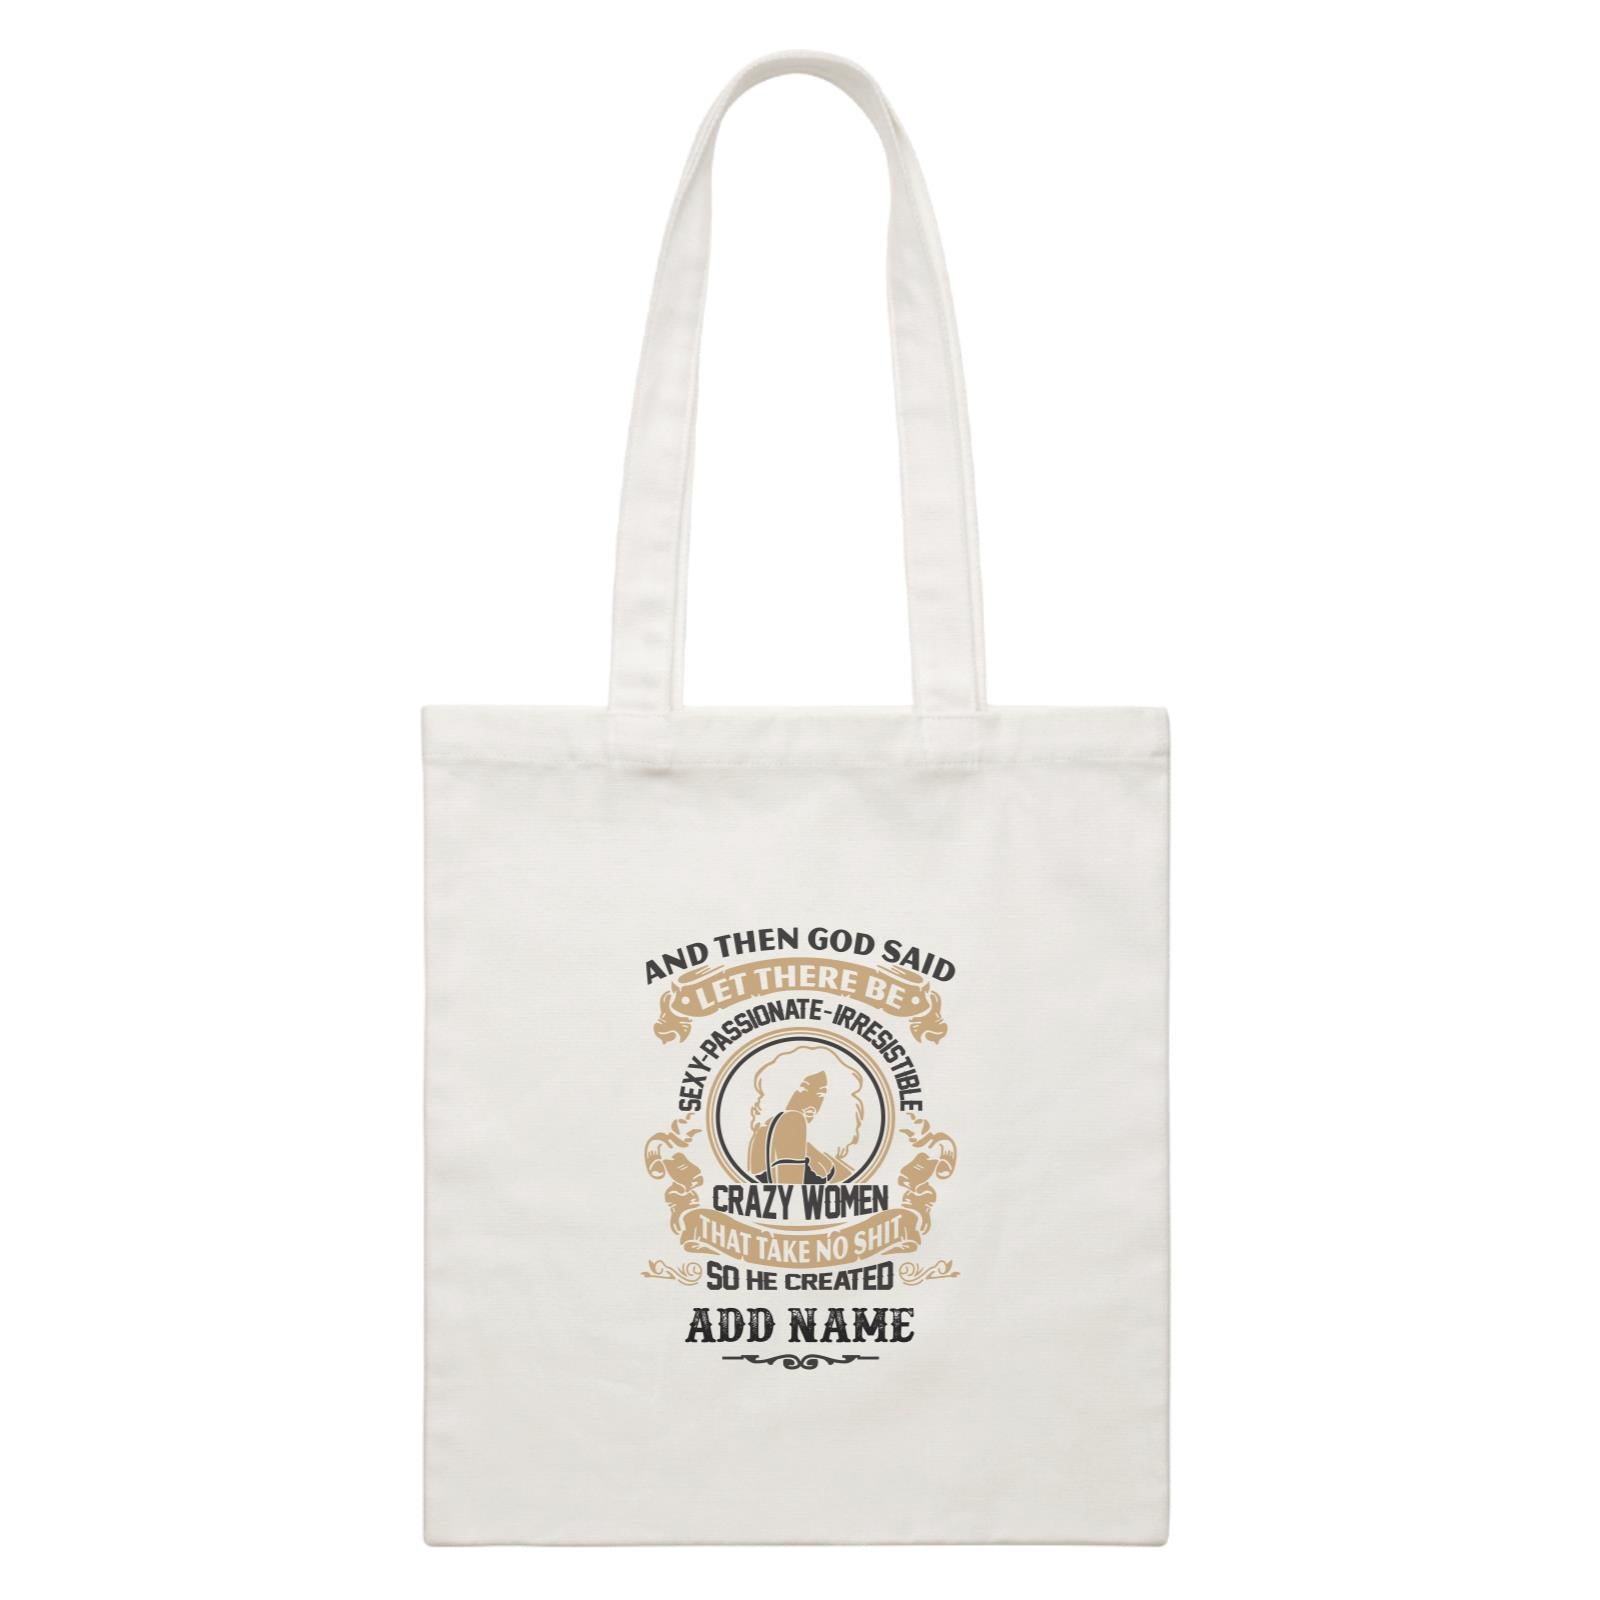 Personalize It Awesome And Then God Said Sexy Passionate Irresistible Addname White White Canvas Bag